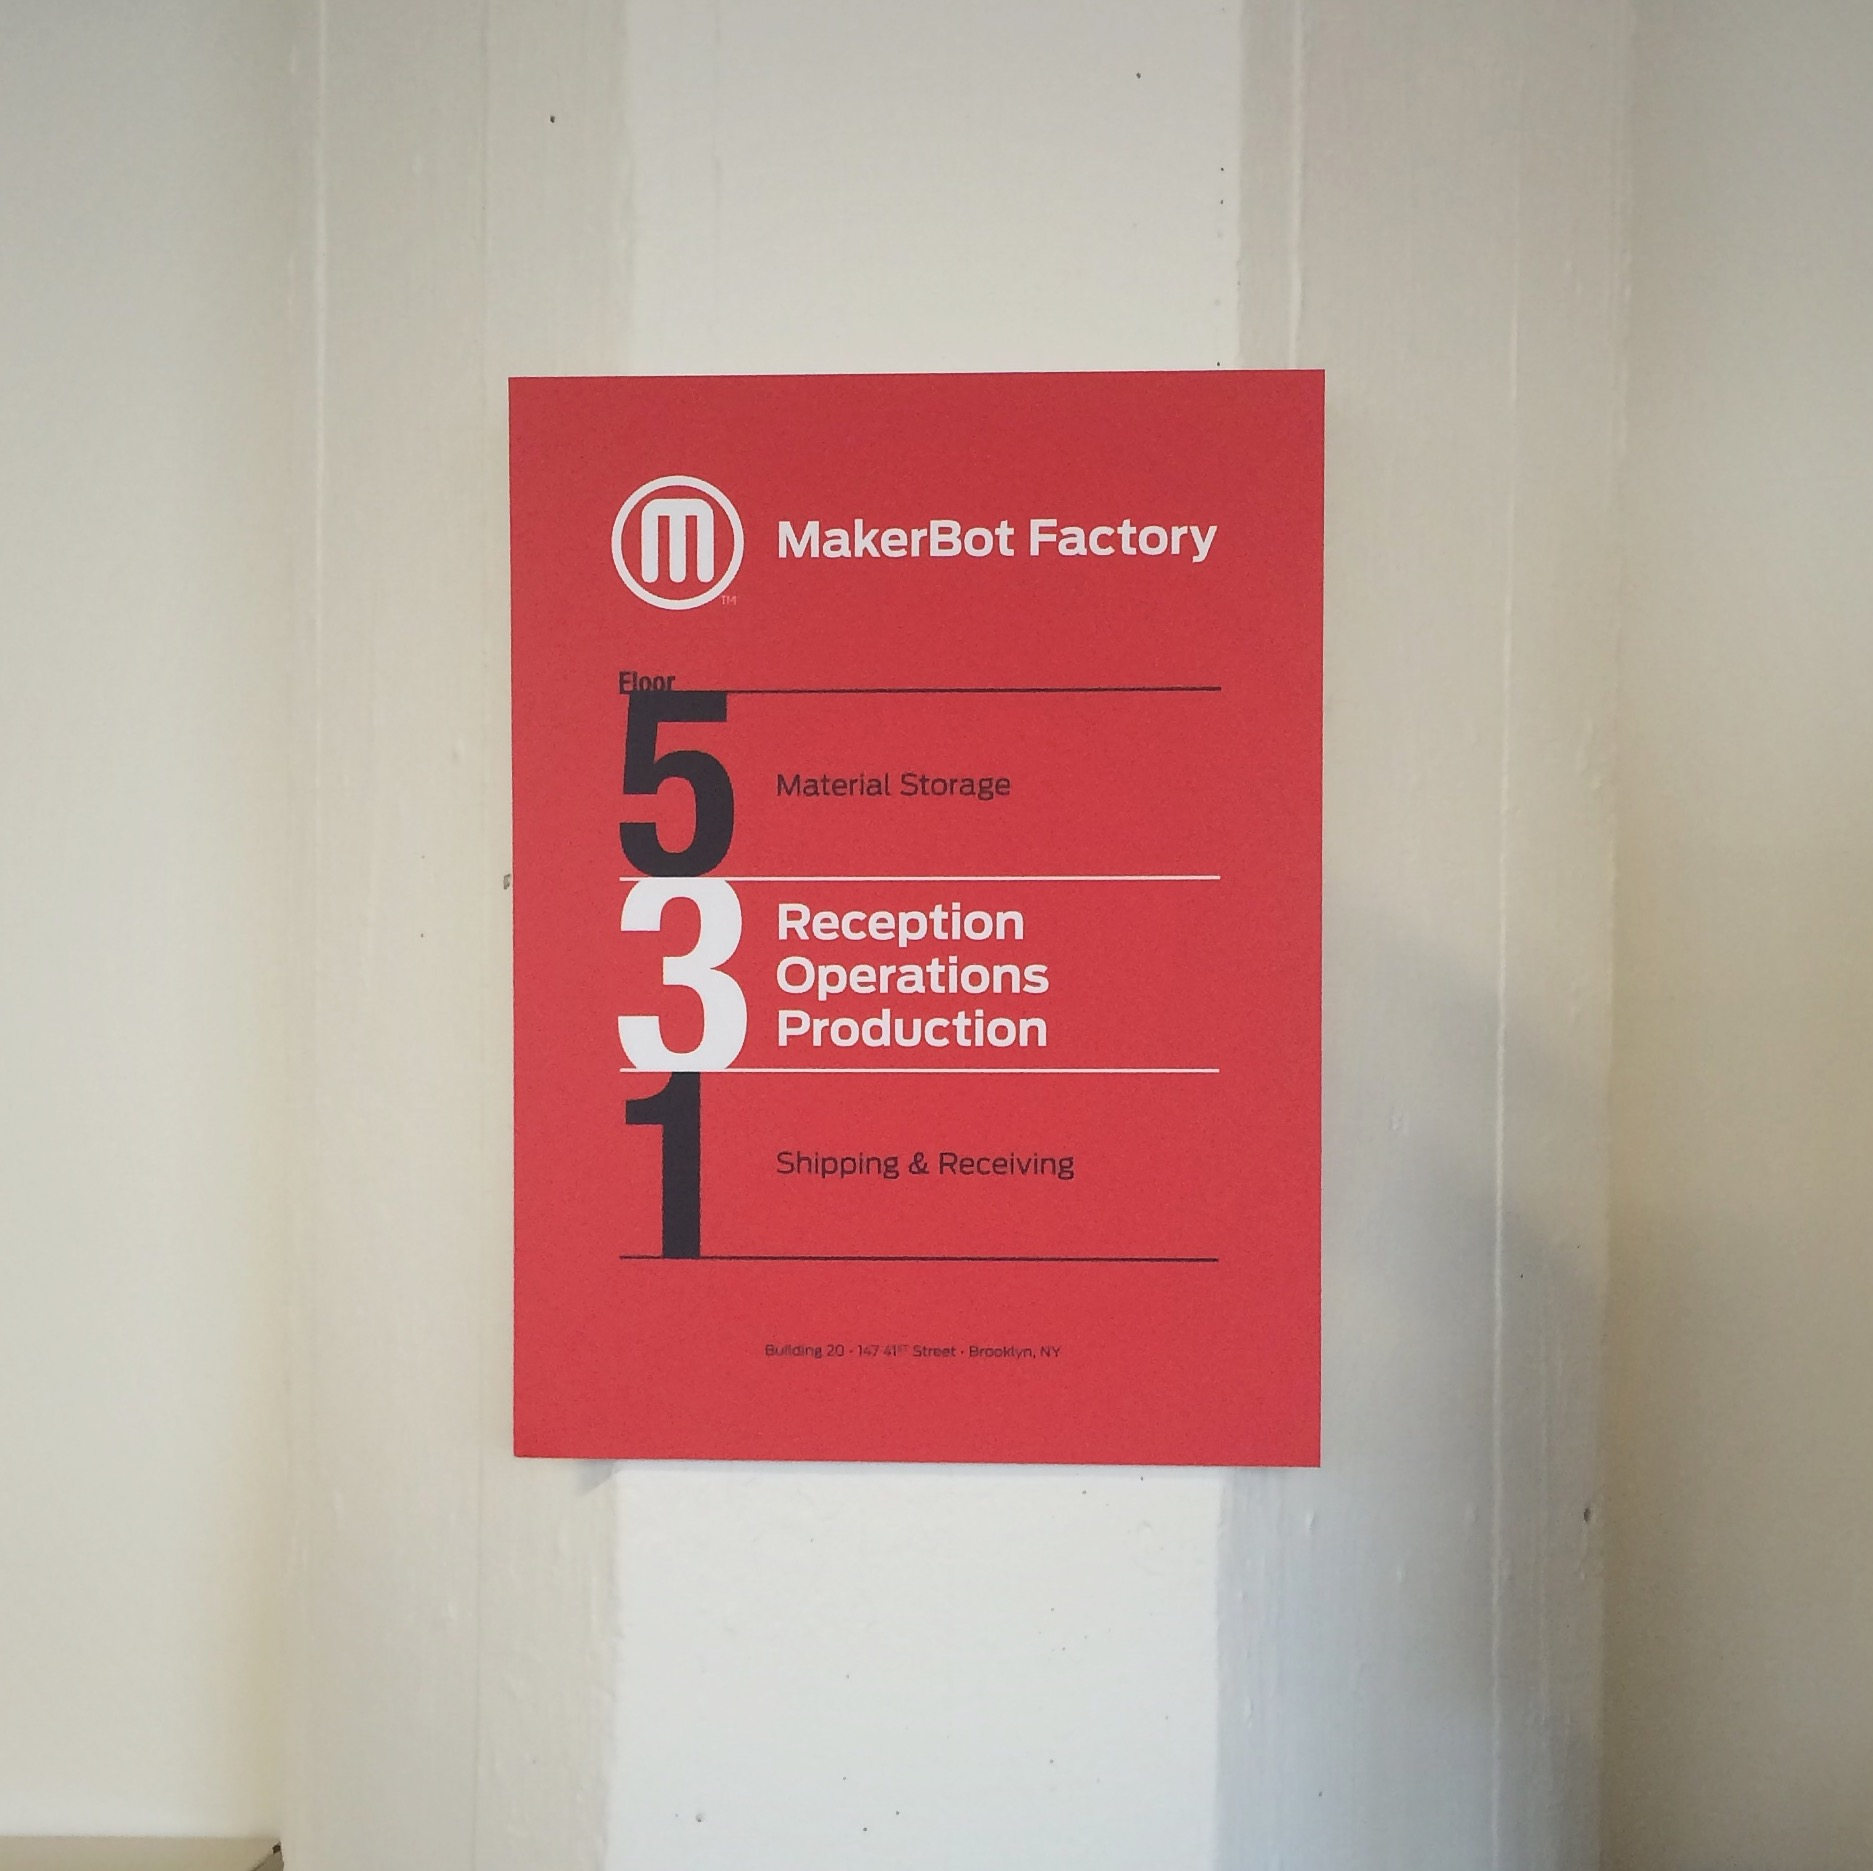 makerbot factory building sign